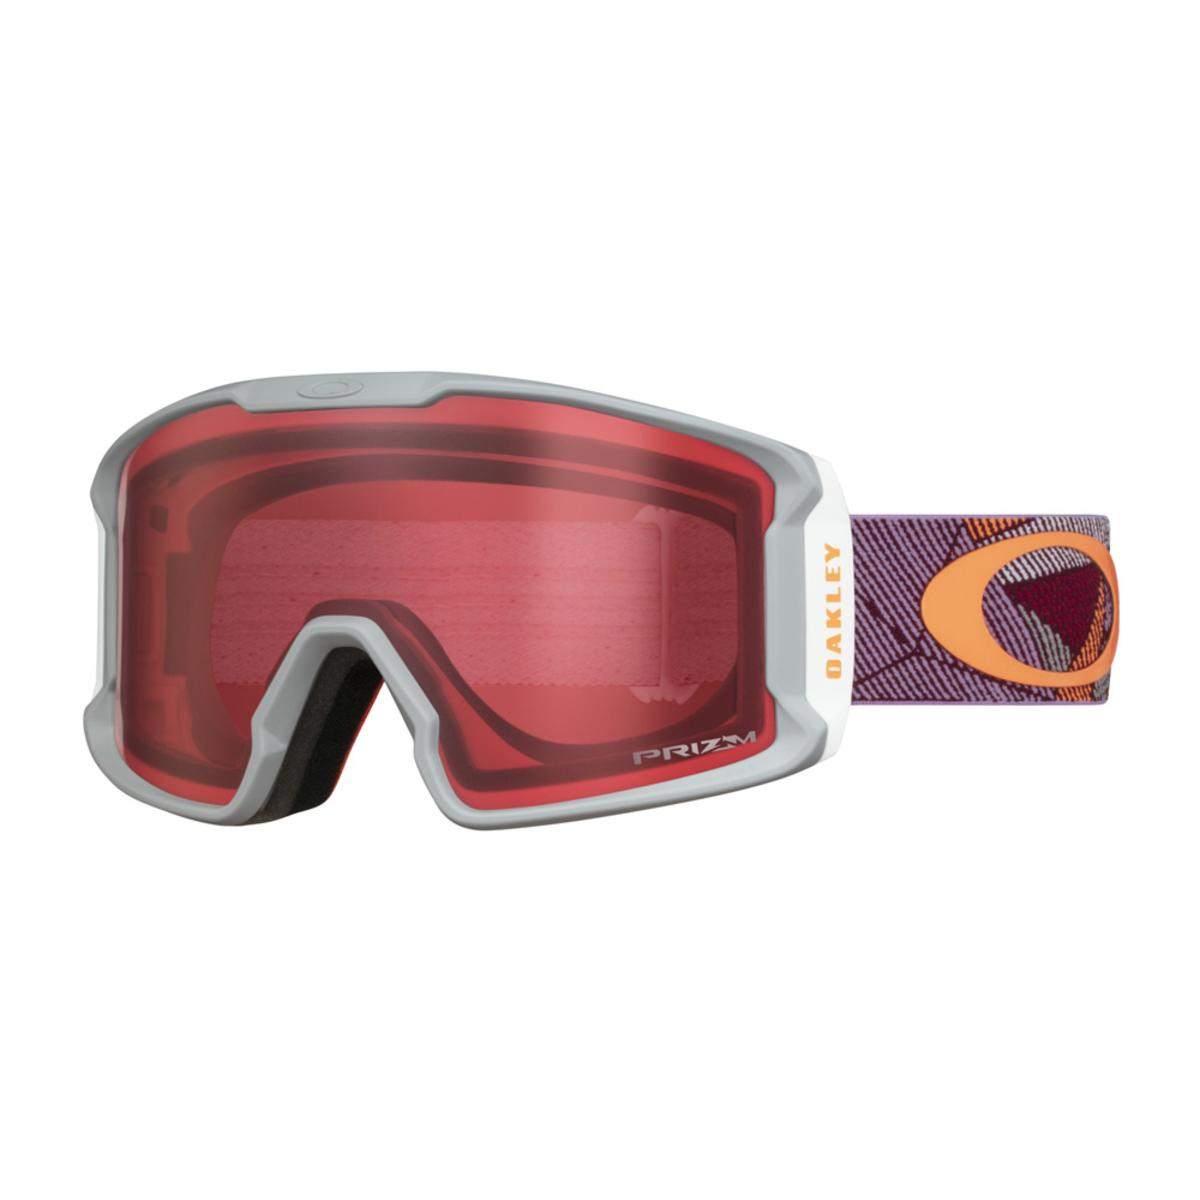 6f8ab9fe45 Oakley Line Miner XM Port Sharkskin Snow Goggle w Prizm Snow Rose - The  Warming Store